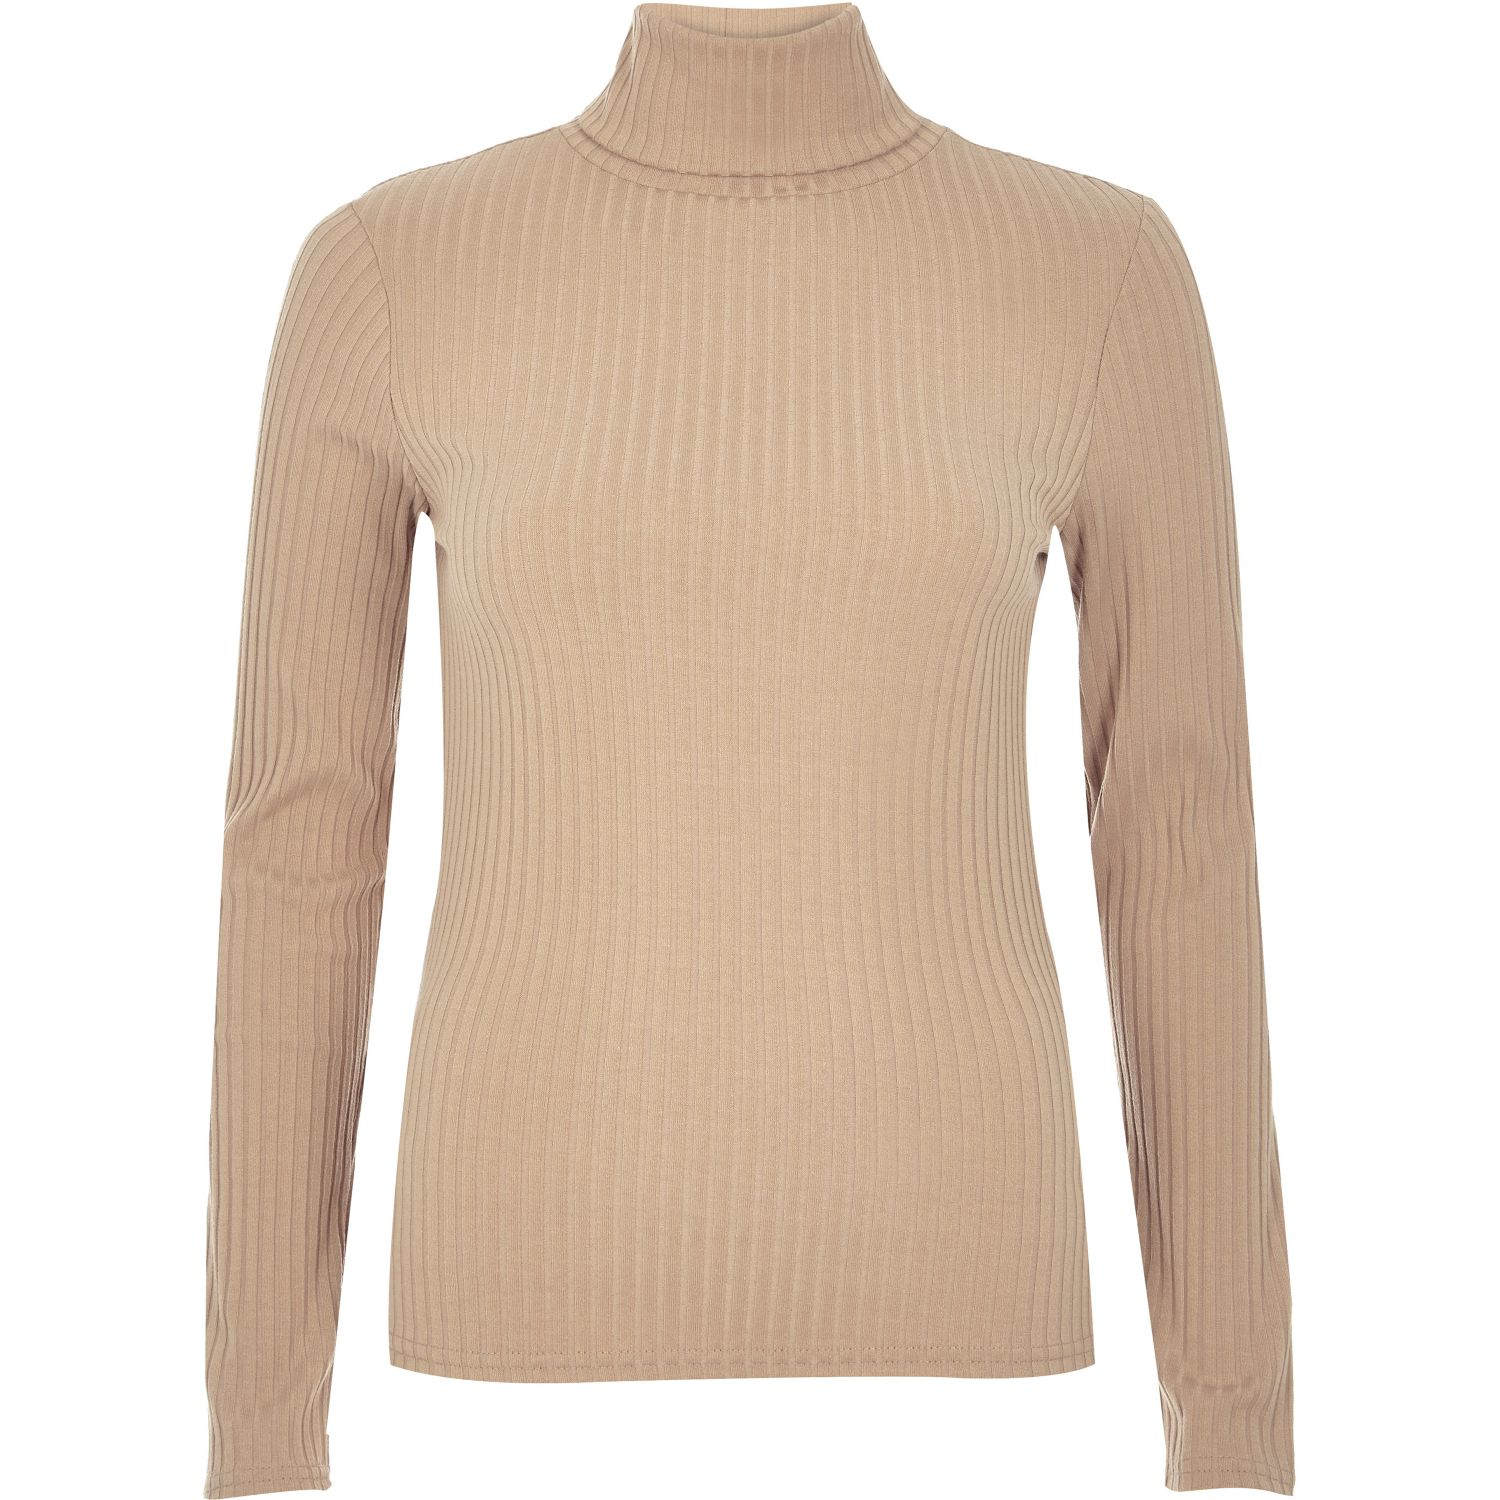 3780f4009d5 River Island Light Brown Ribbed Roll Neck Top - Lyst